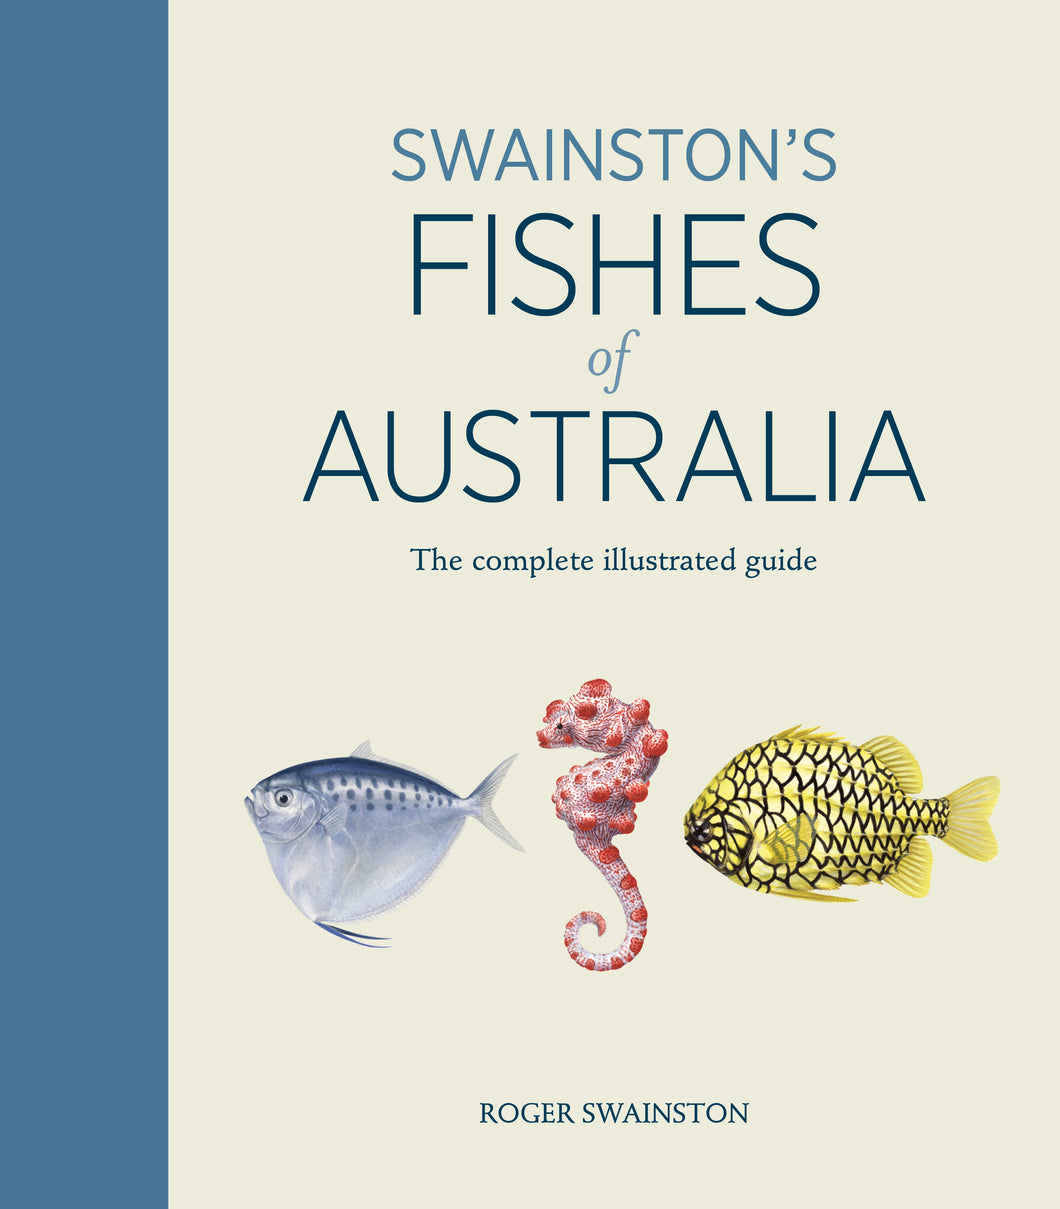 Swainston's Fishes of Australia: The Complete Guide